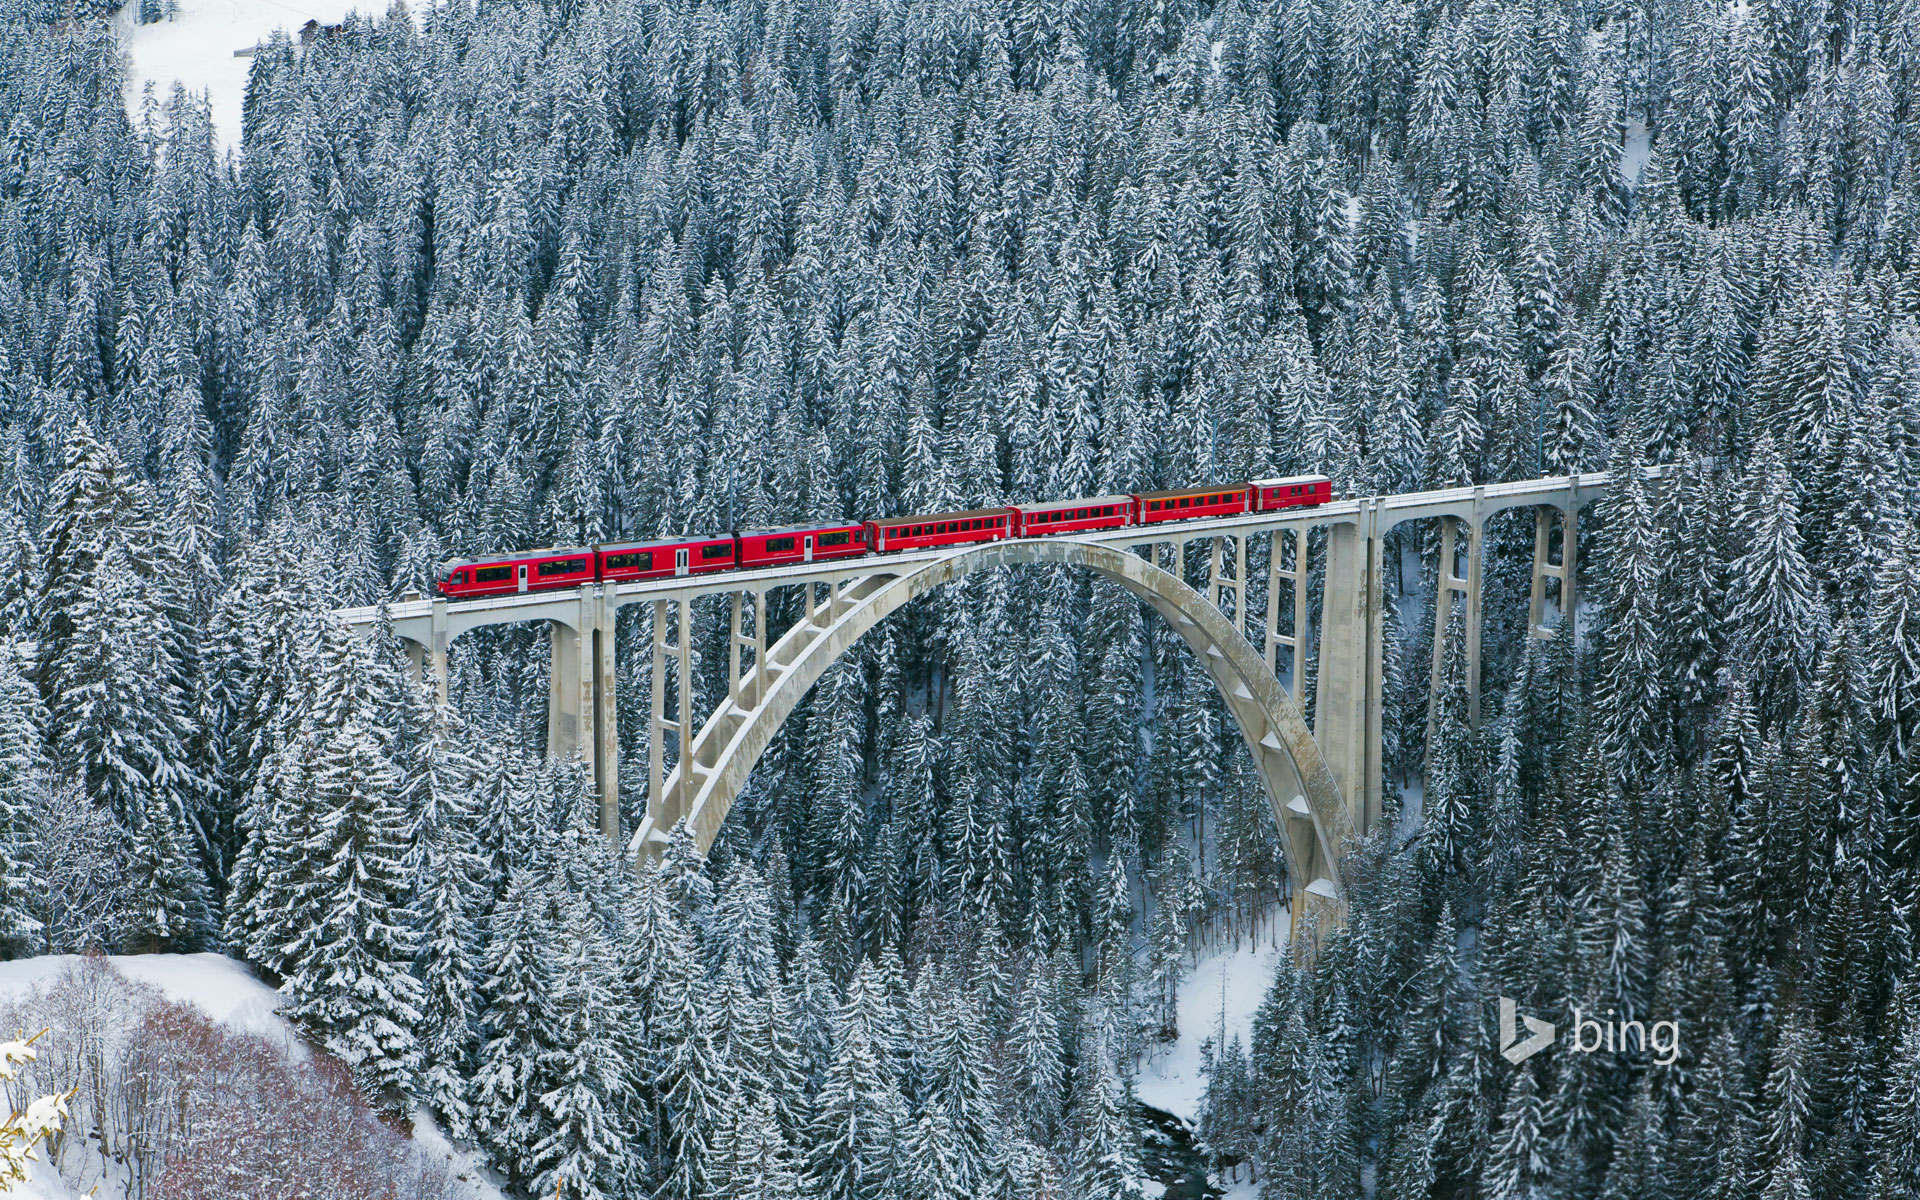 Rhaetian Railway train passing over Langwieser Viaduct, Switzerland